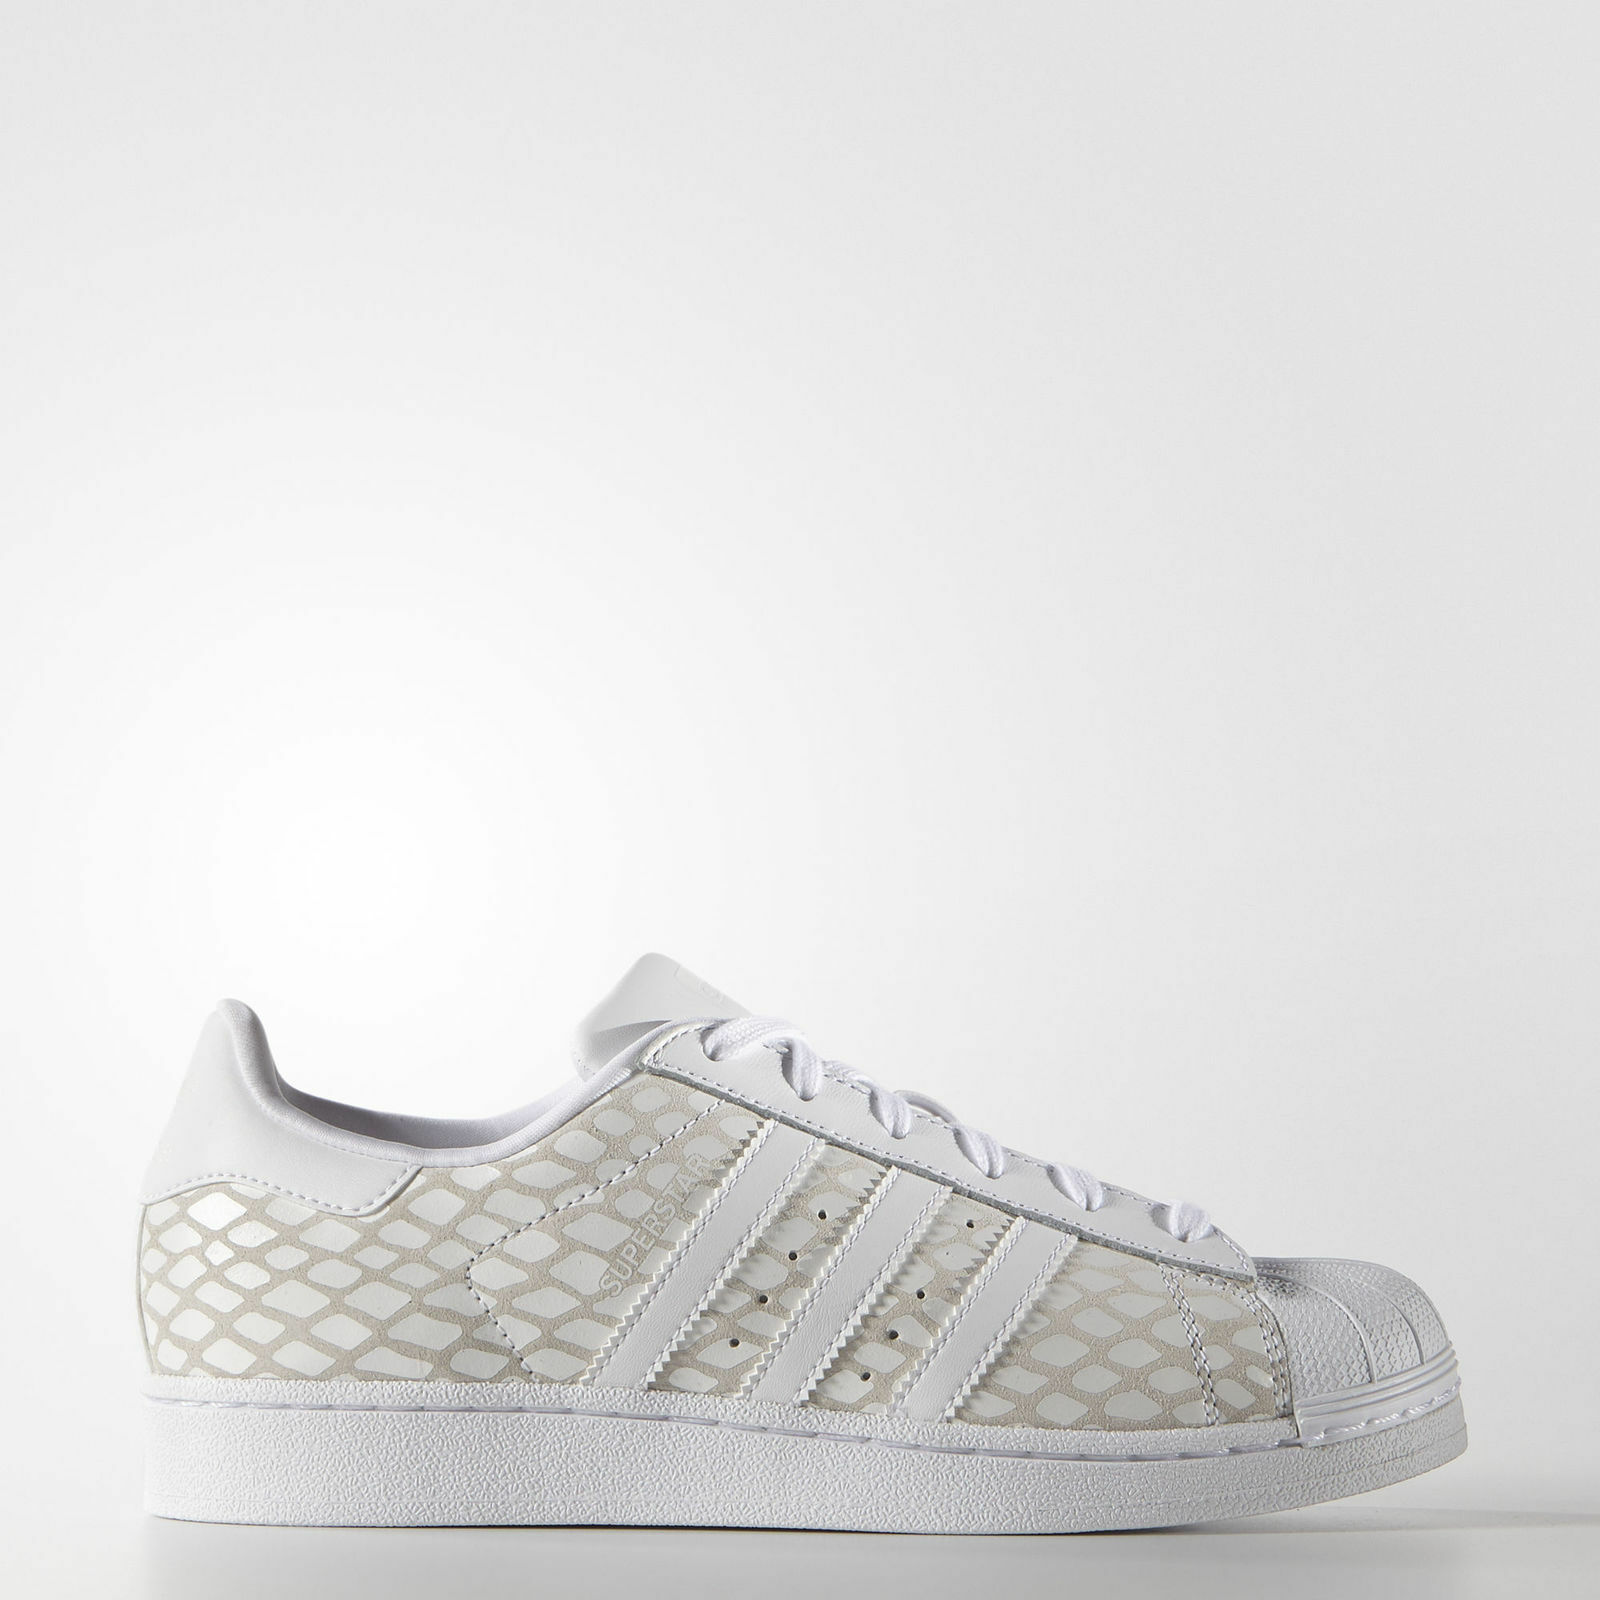 d571f944e1e1 New Women s Adidas Originals Superstar Superstar Superstar Shoes Color   White Size  9 fdea48